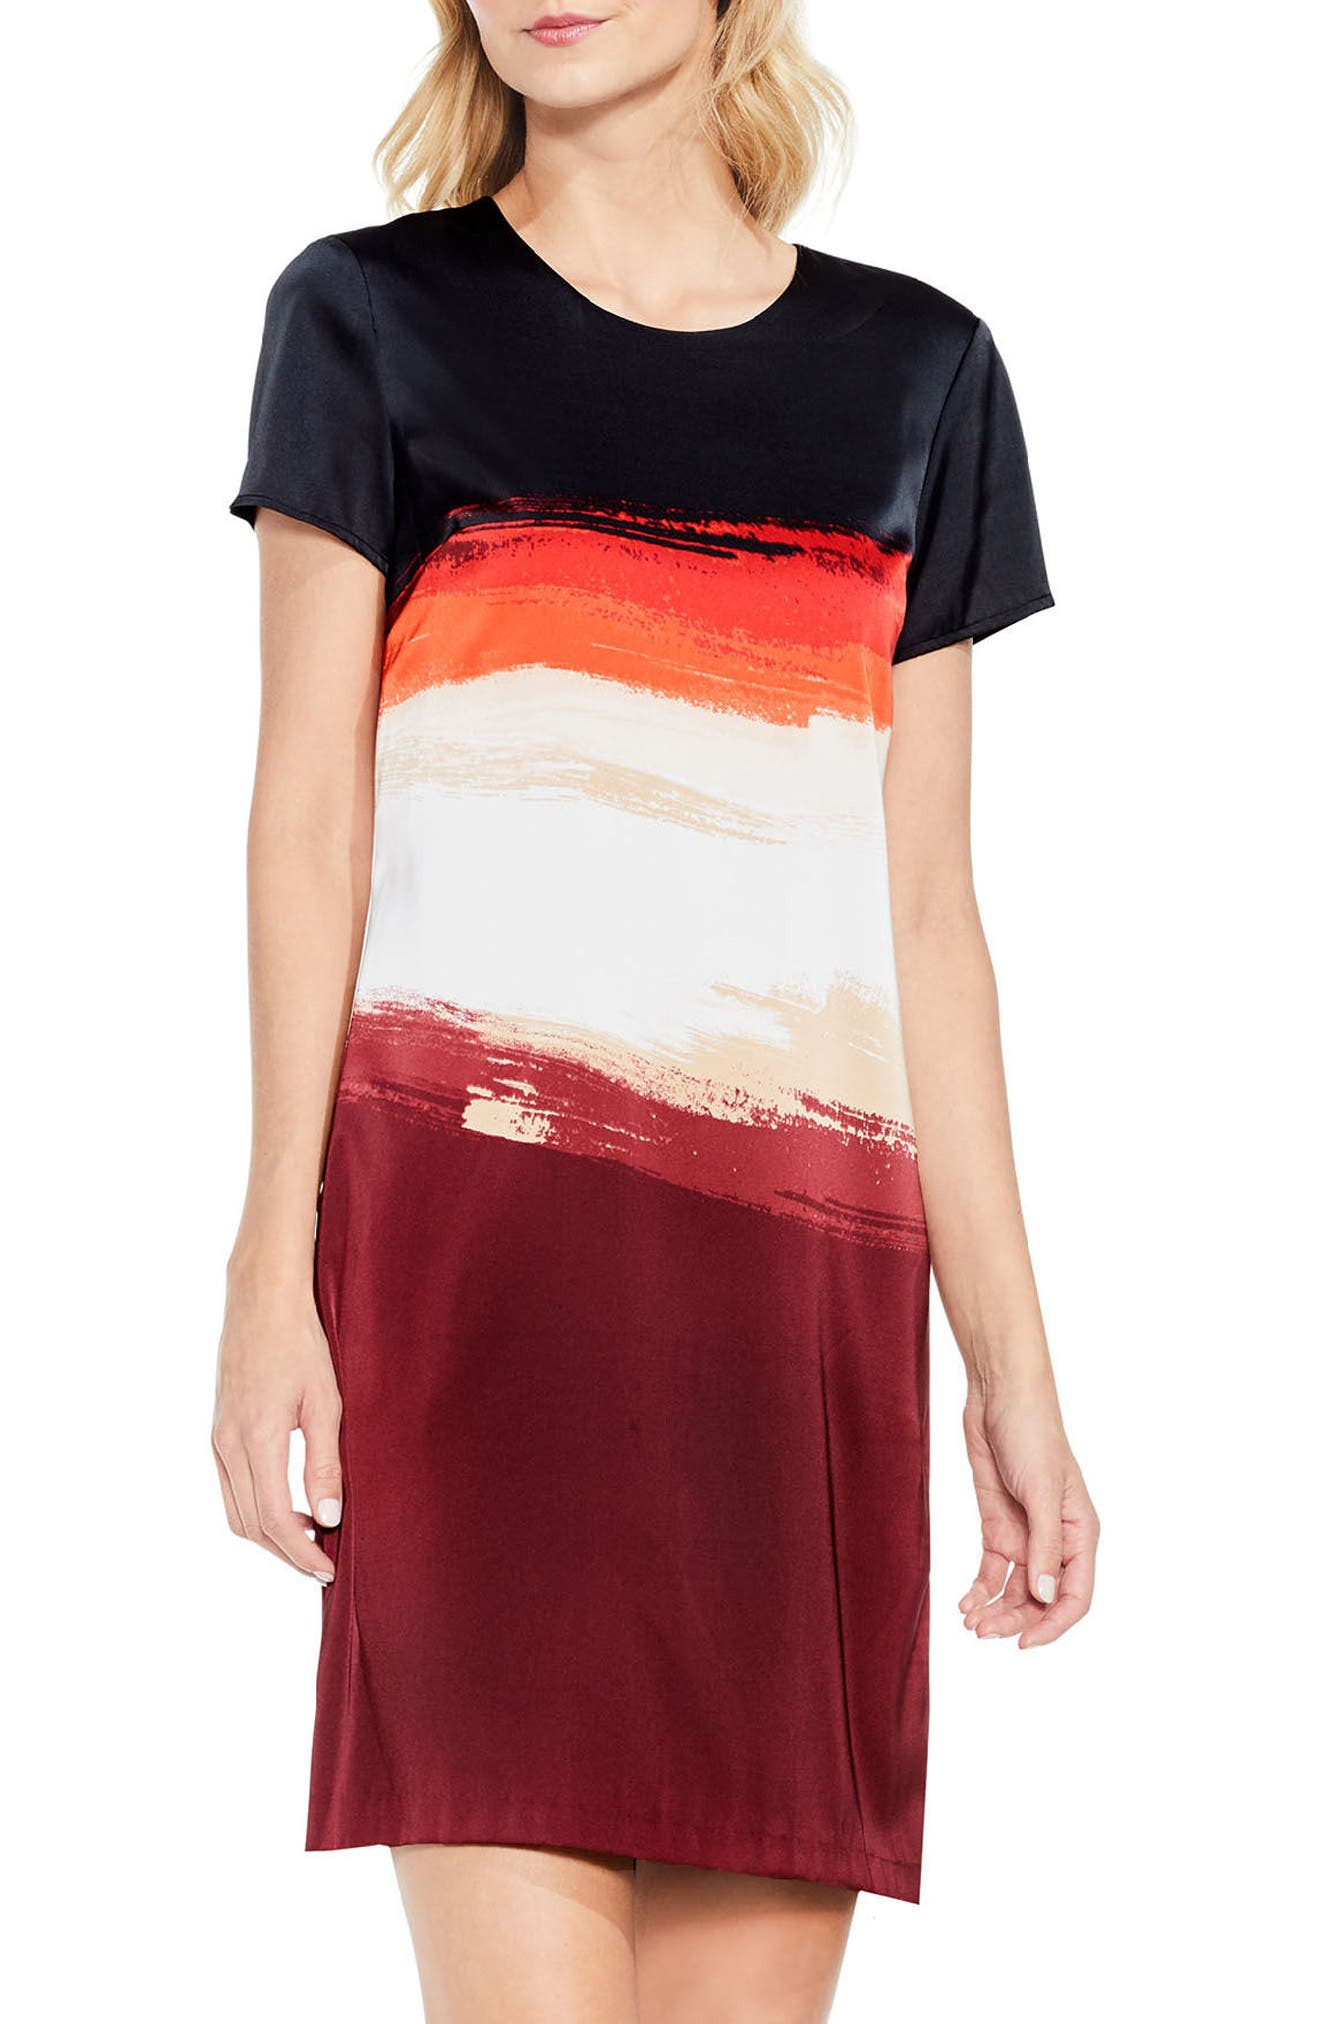 Alternate Image 1 Selected - Vince Camuto Brushstroke Horizons Dress (Regular & Petite)